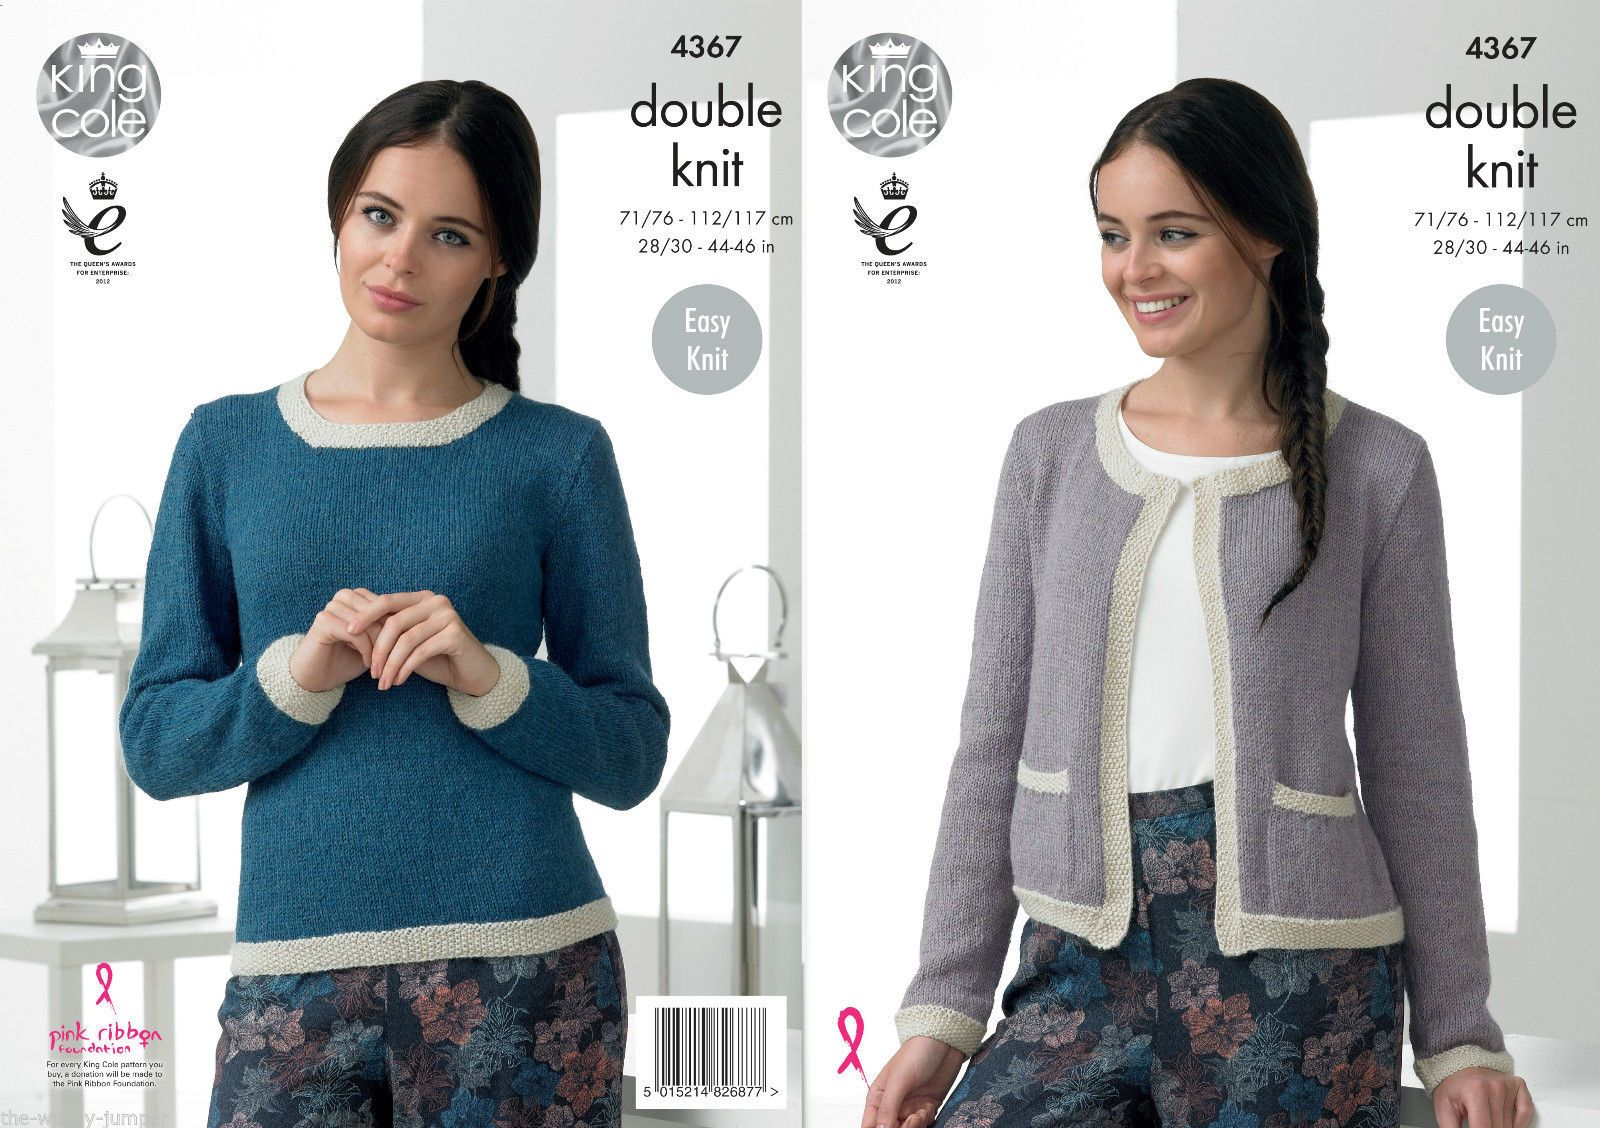 4367 - KING COLE BABY ALPACA DK SWEATER & JACKET KNITTING PATTERN ...